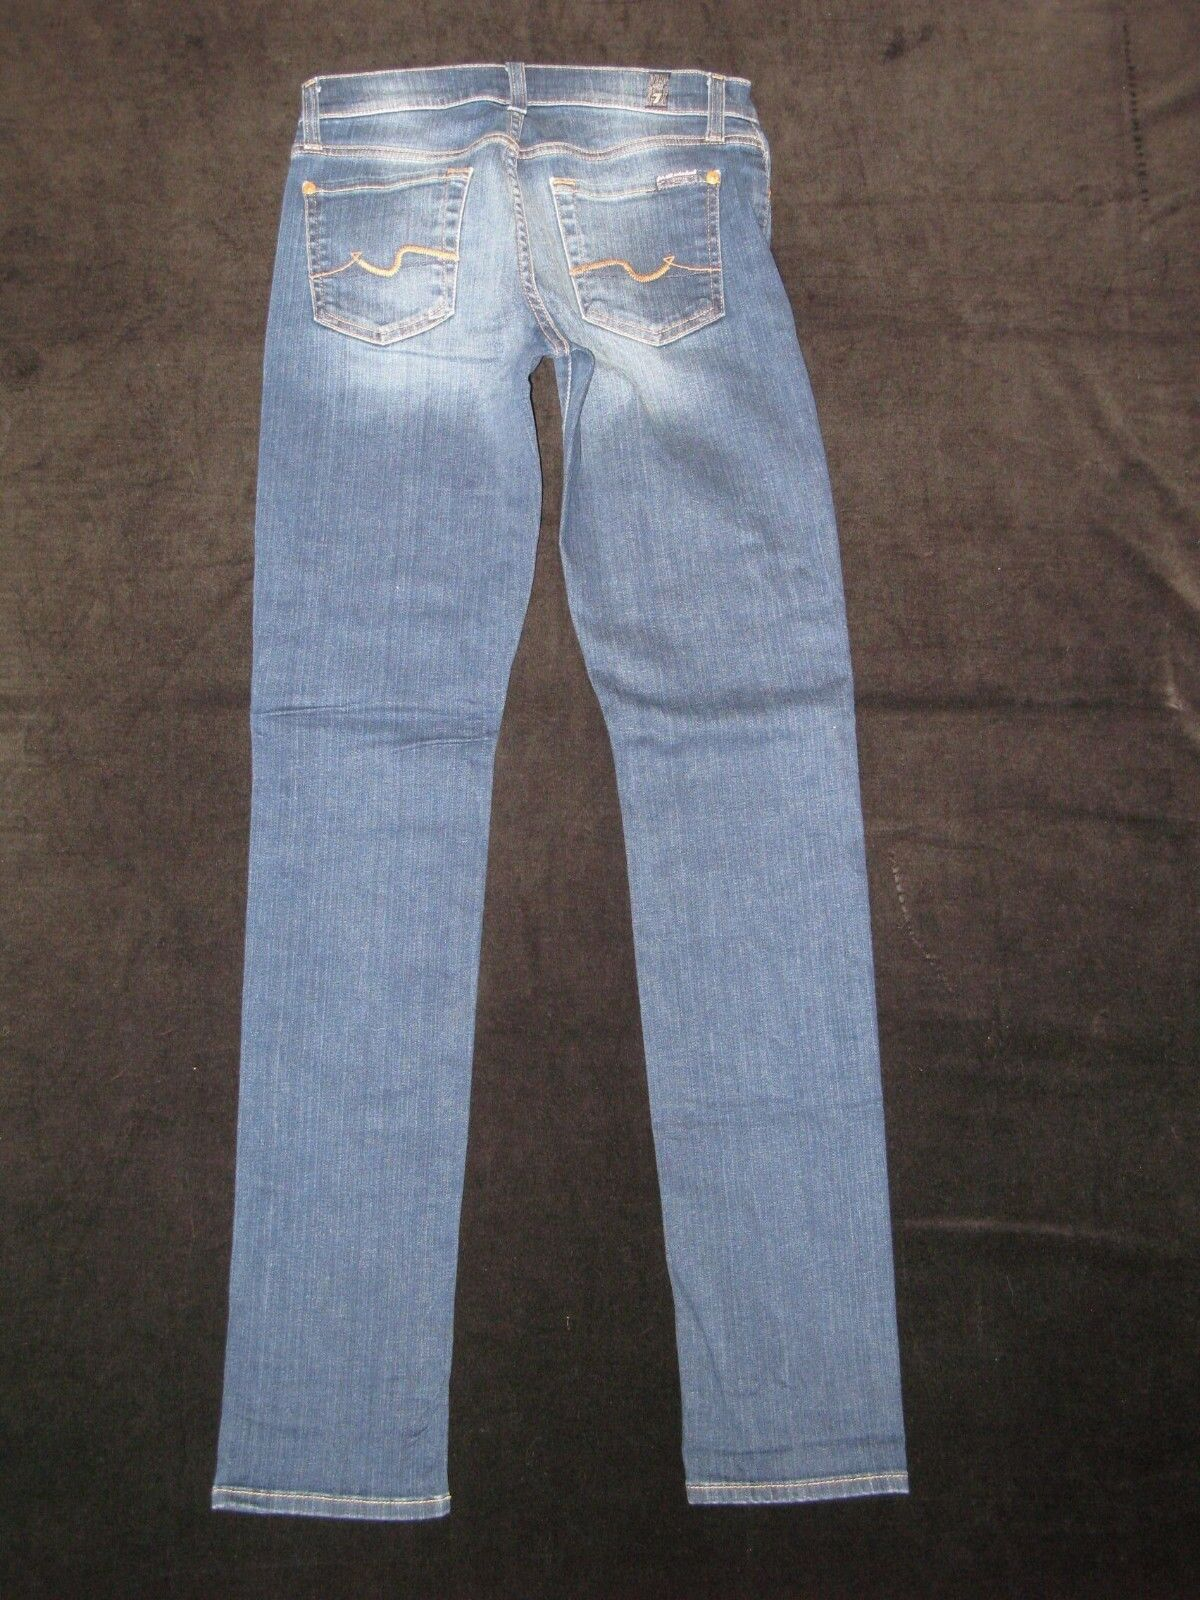 7 For All Mankind Roxanne Jeans Womens Sz 26 Mid Rise Skinny Distressed